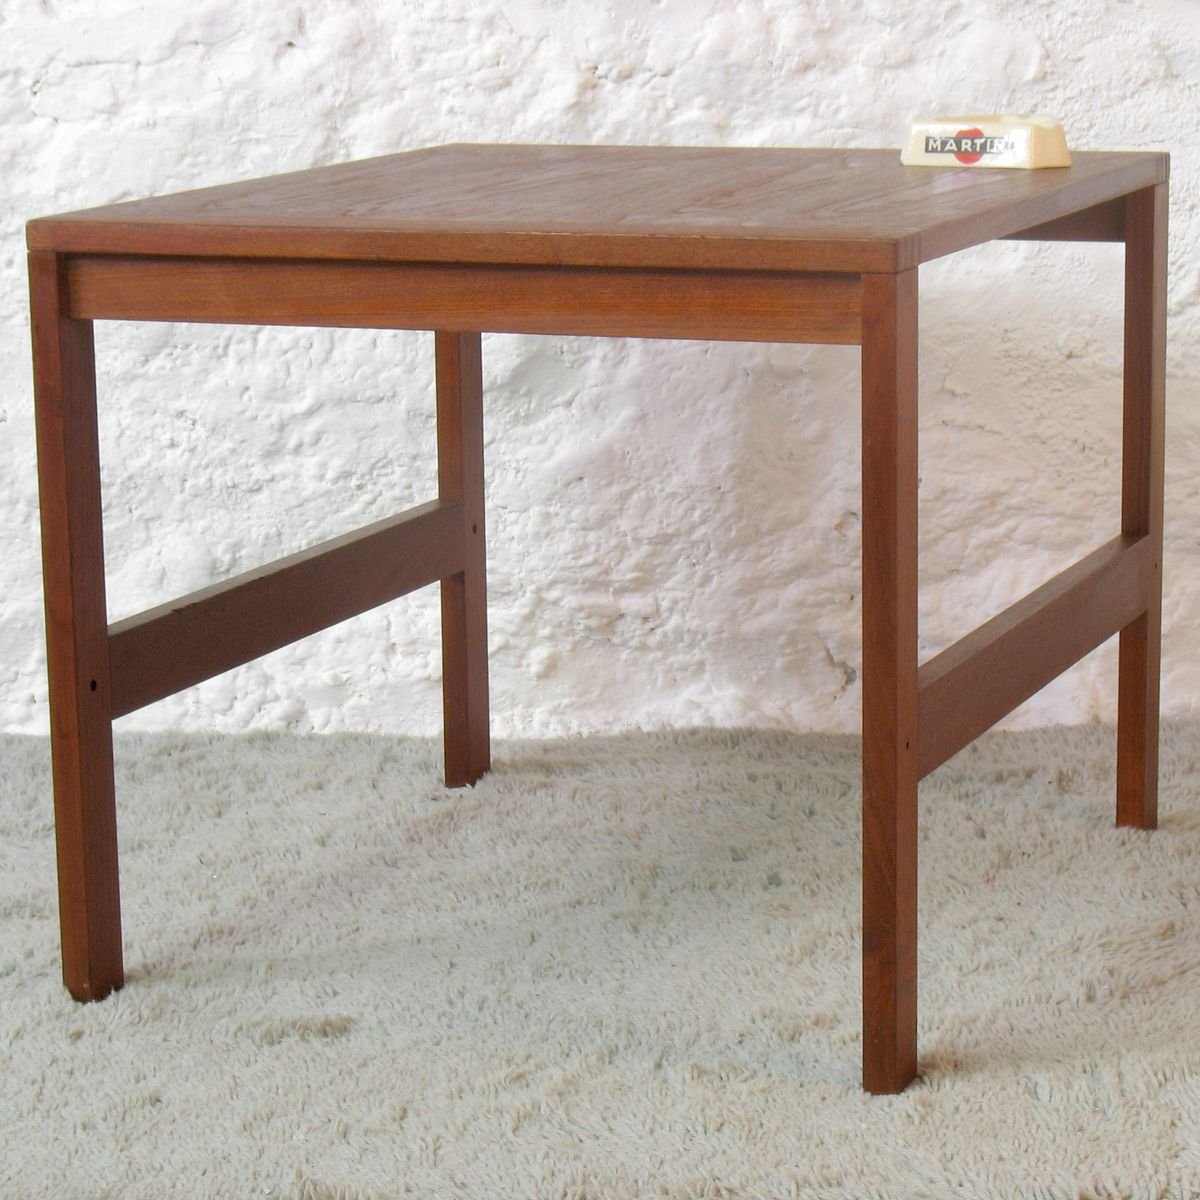 Danish Coffee Table From France Son 1960s For Sale At Pamono